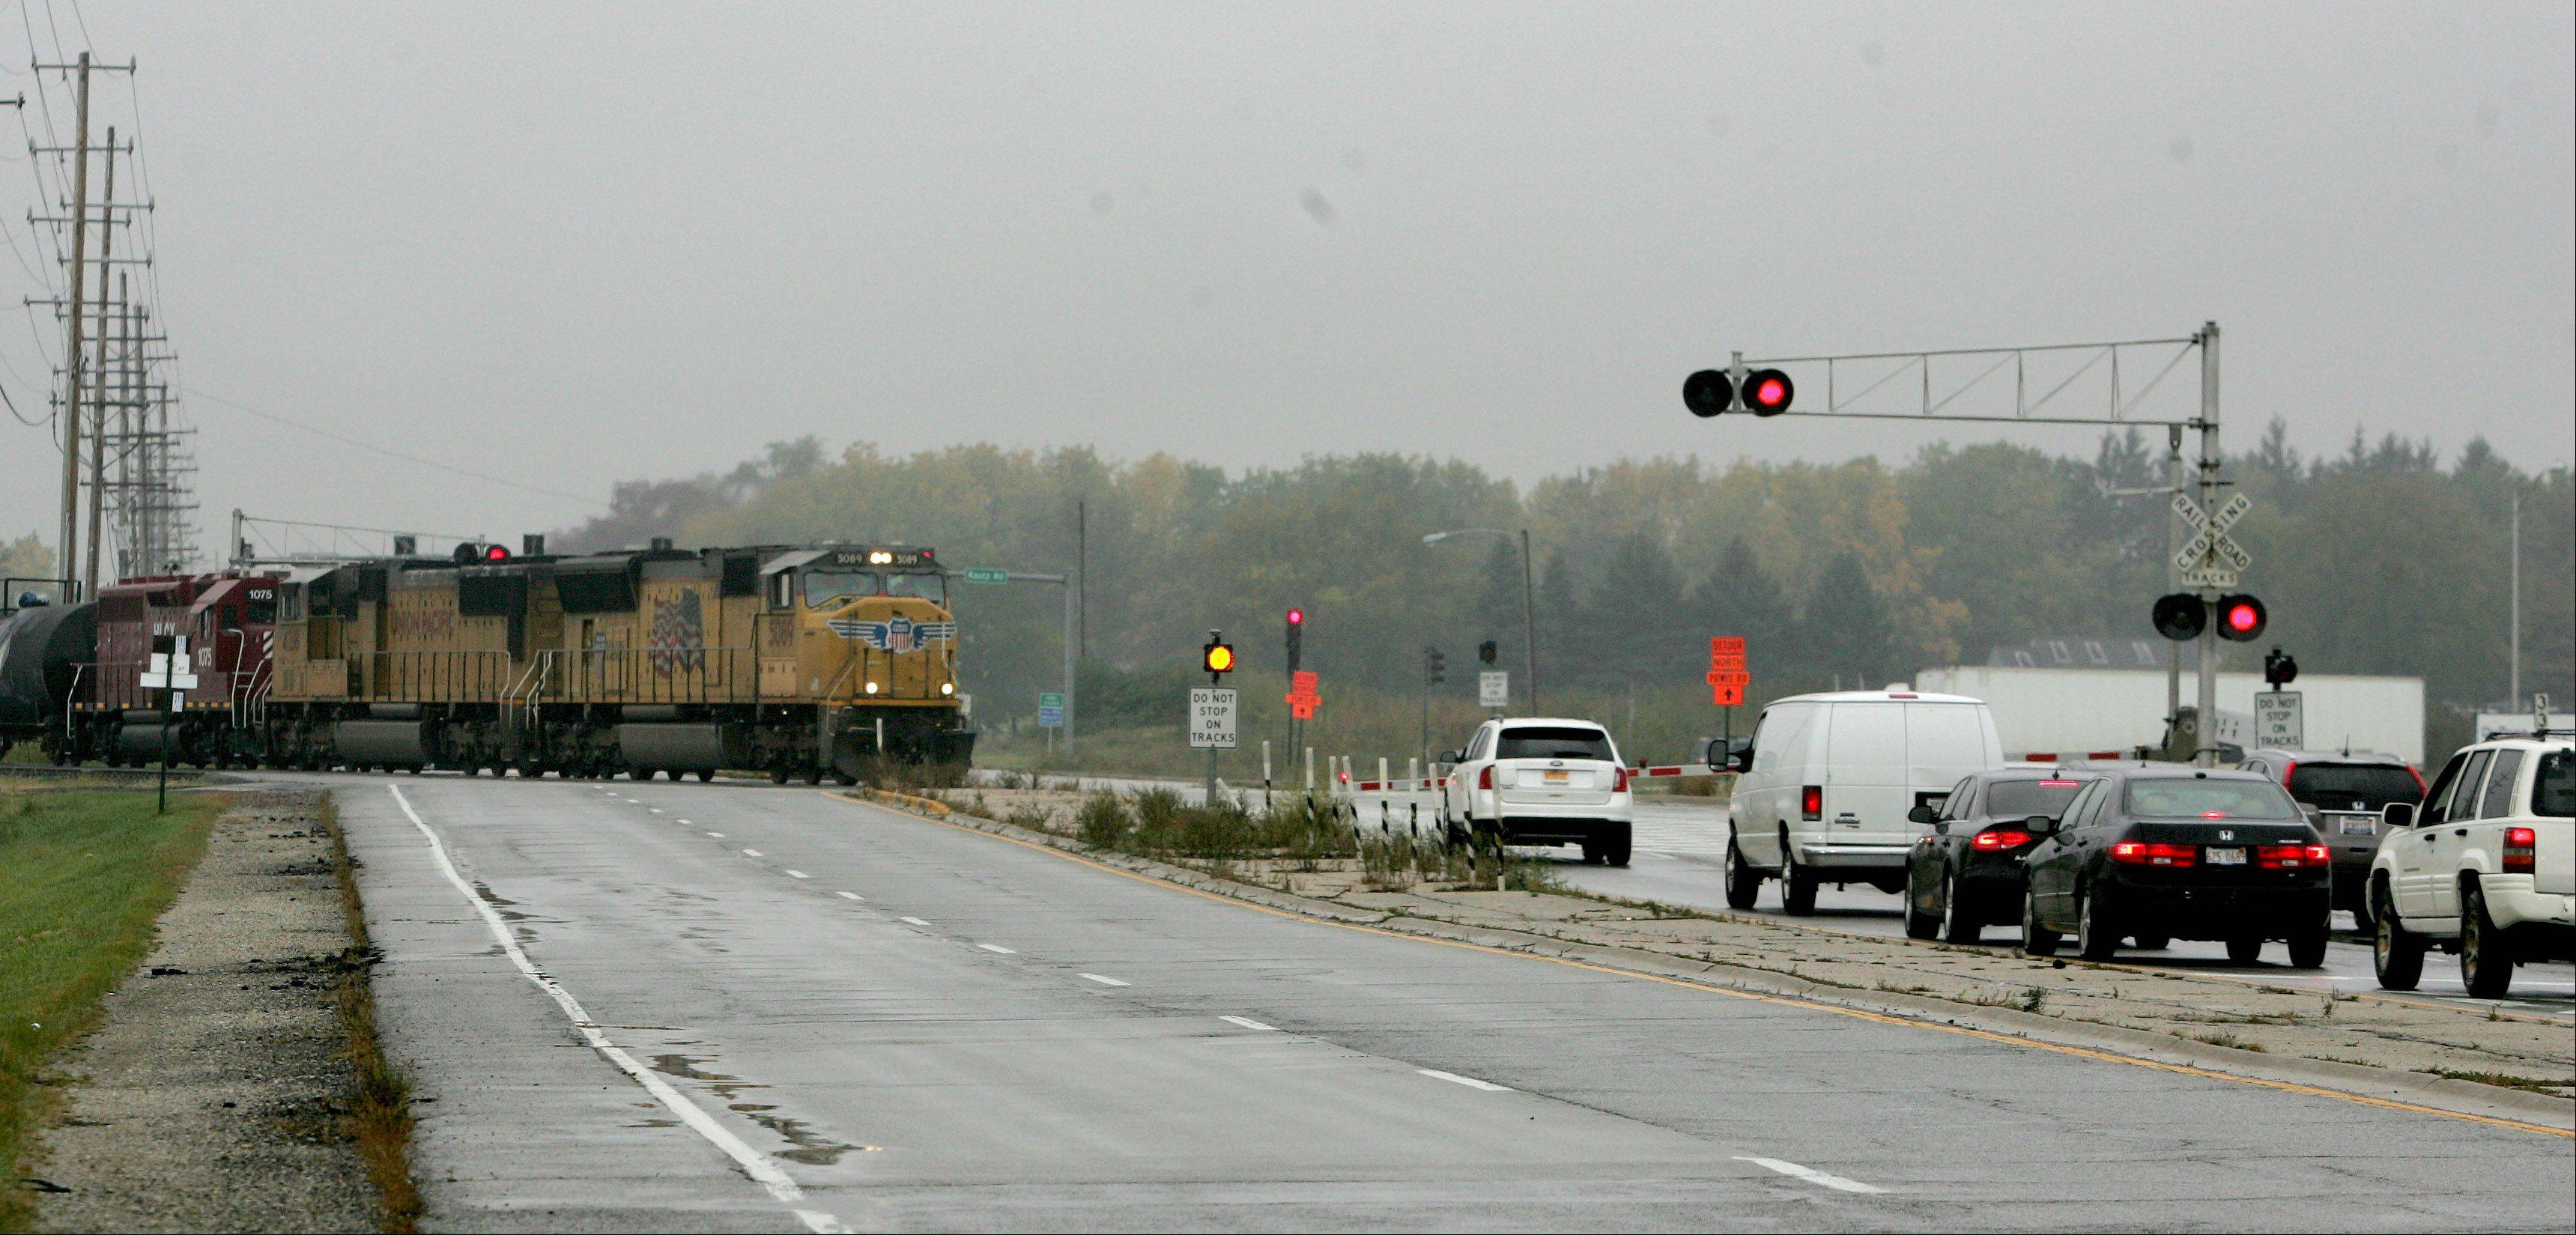 A nearly $26 million overpass, to be completed in two years, will carry vehicles over the railroad crossing on Route 38, near Kautz Road.